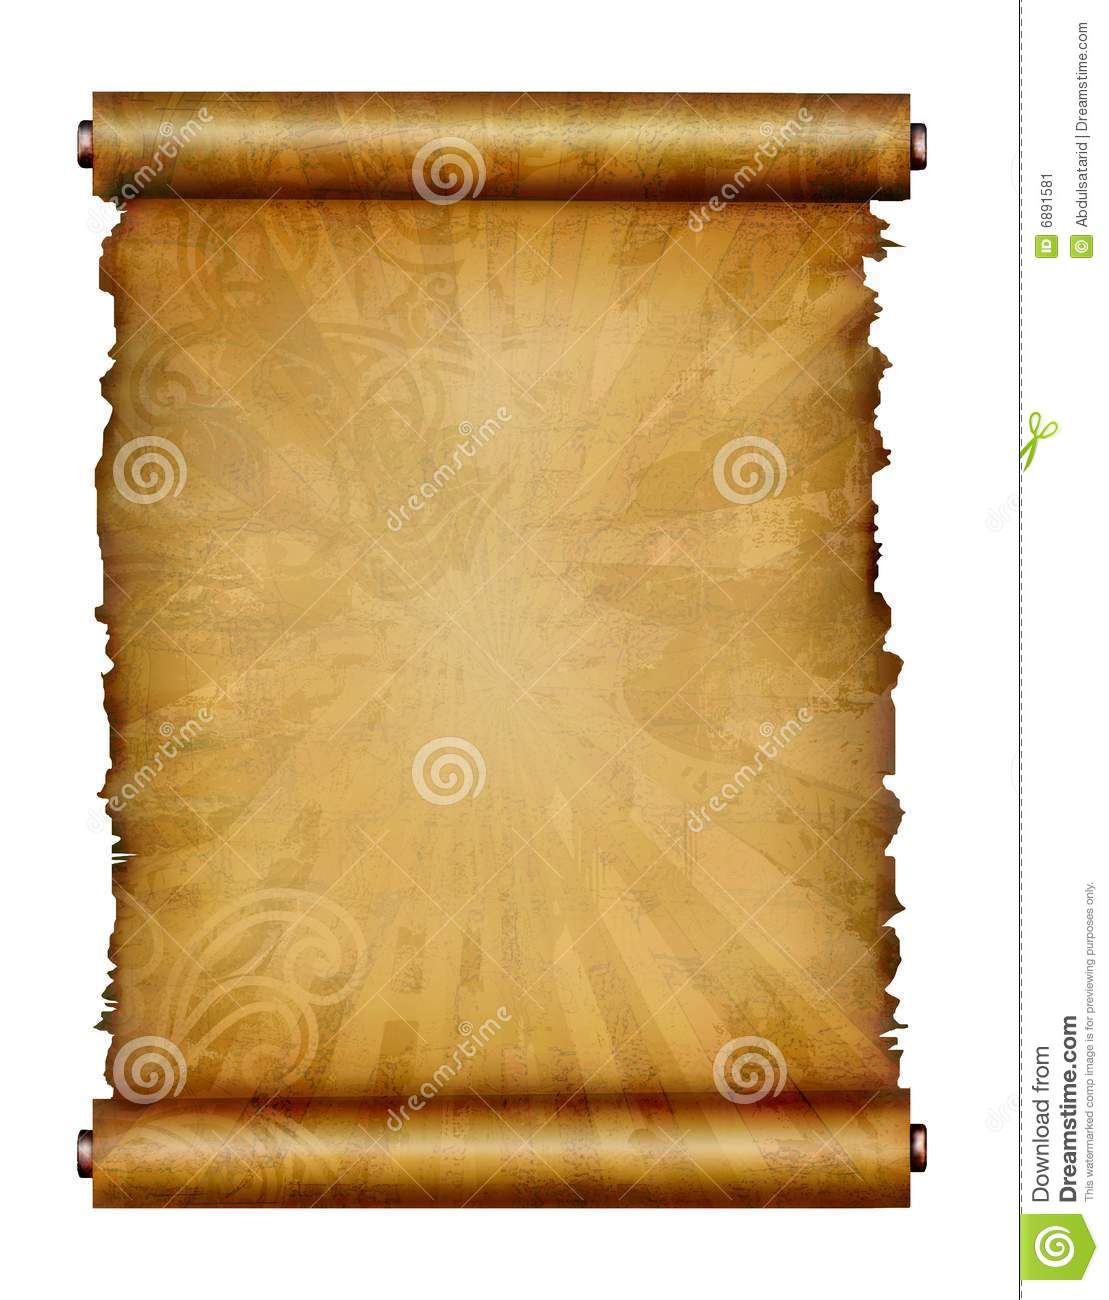 Antique Scrollimgs: Antique Scroll Paper Stock Illustration. Image Of Canvas